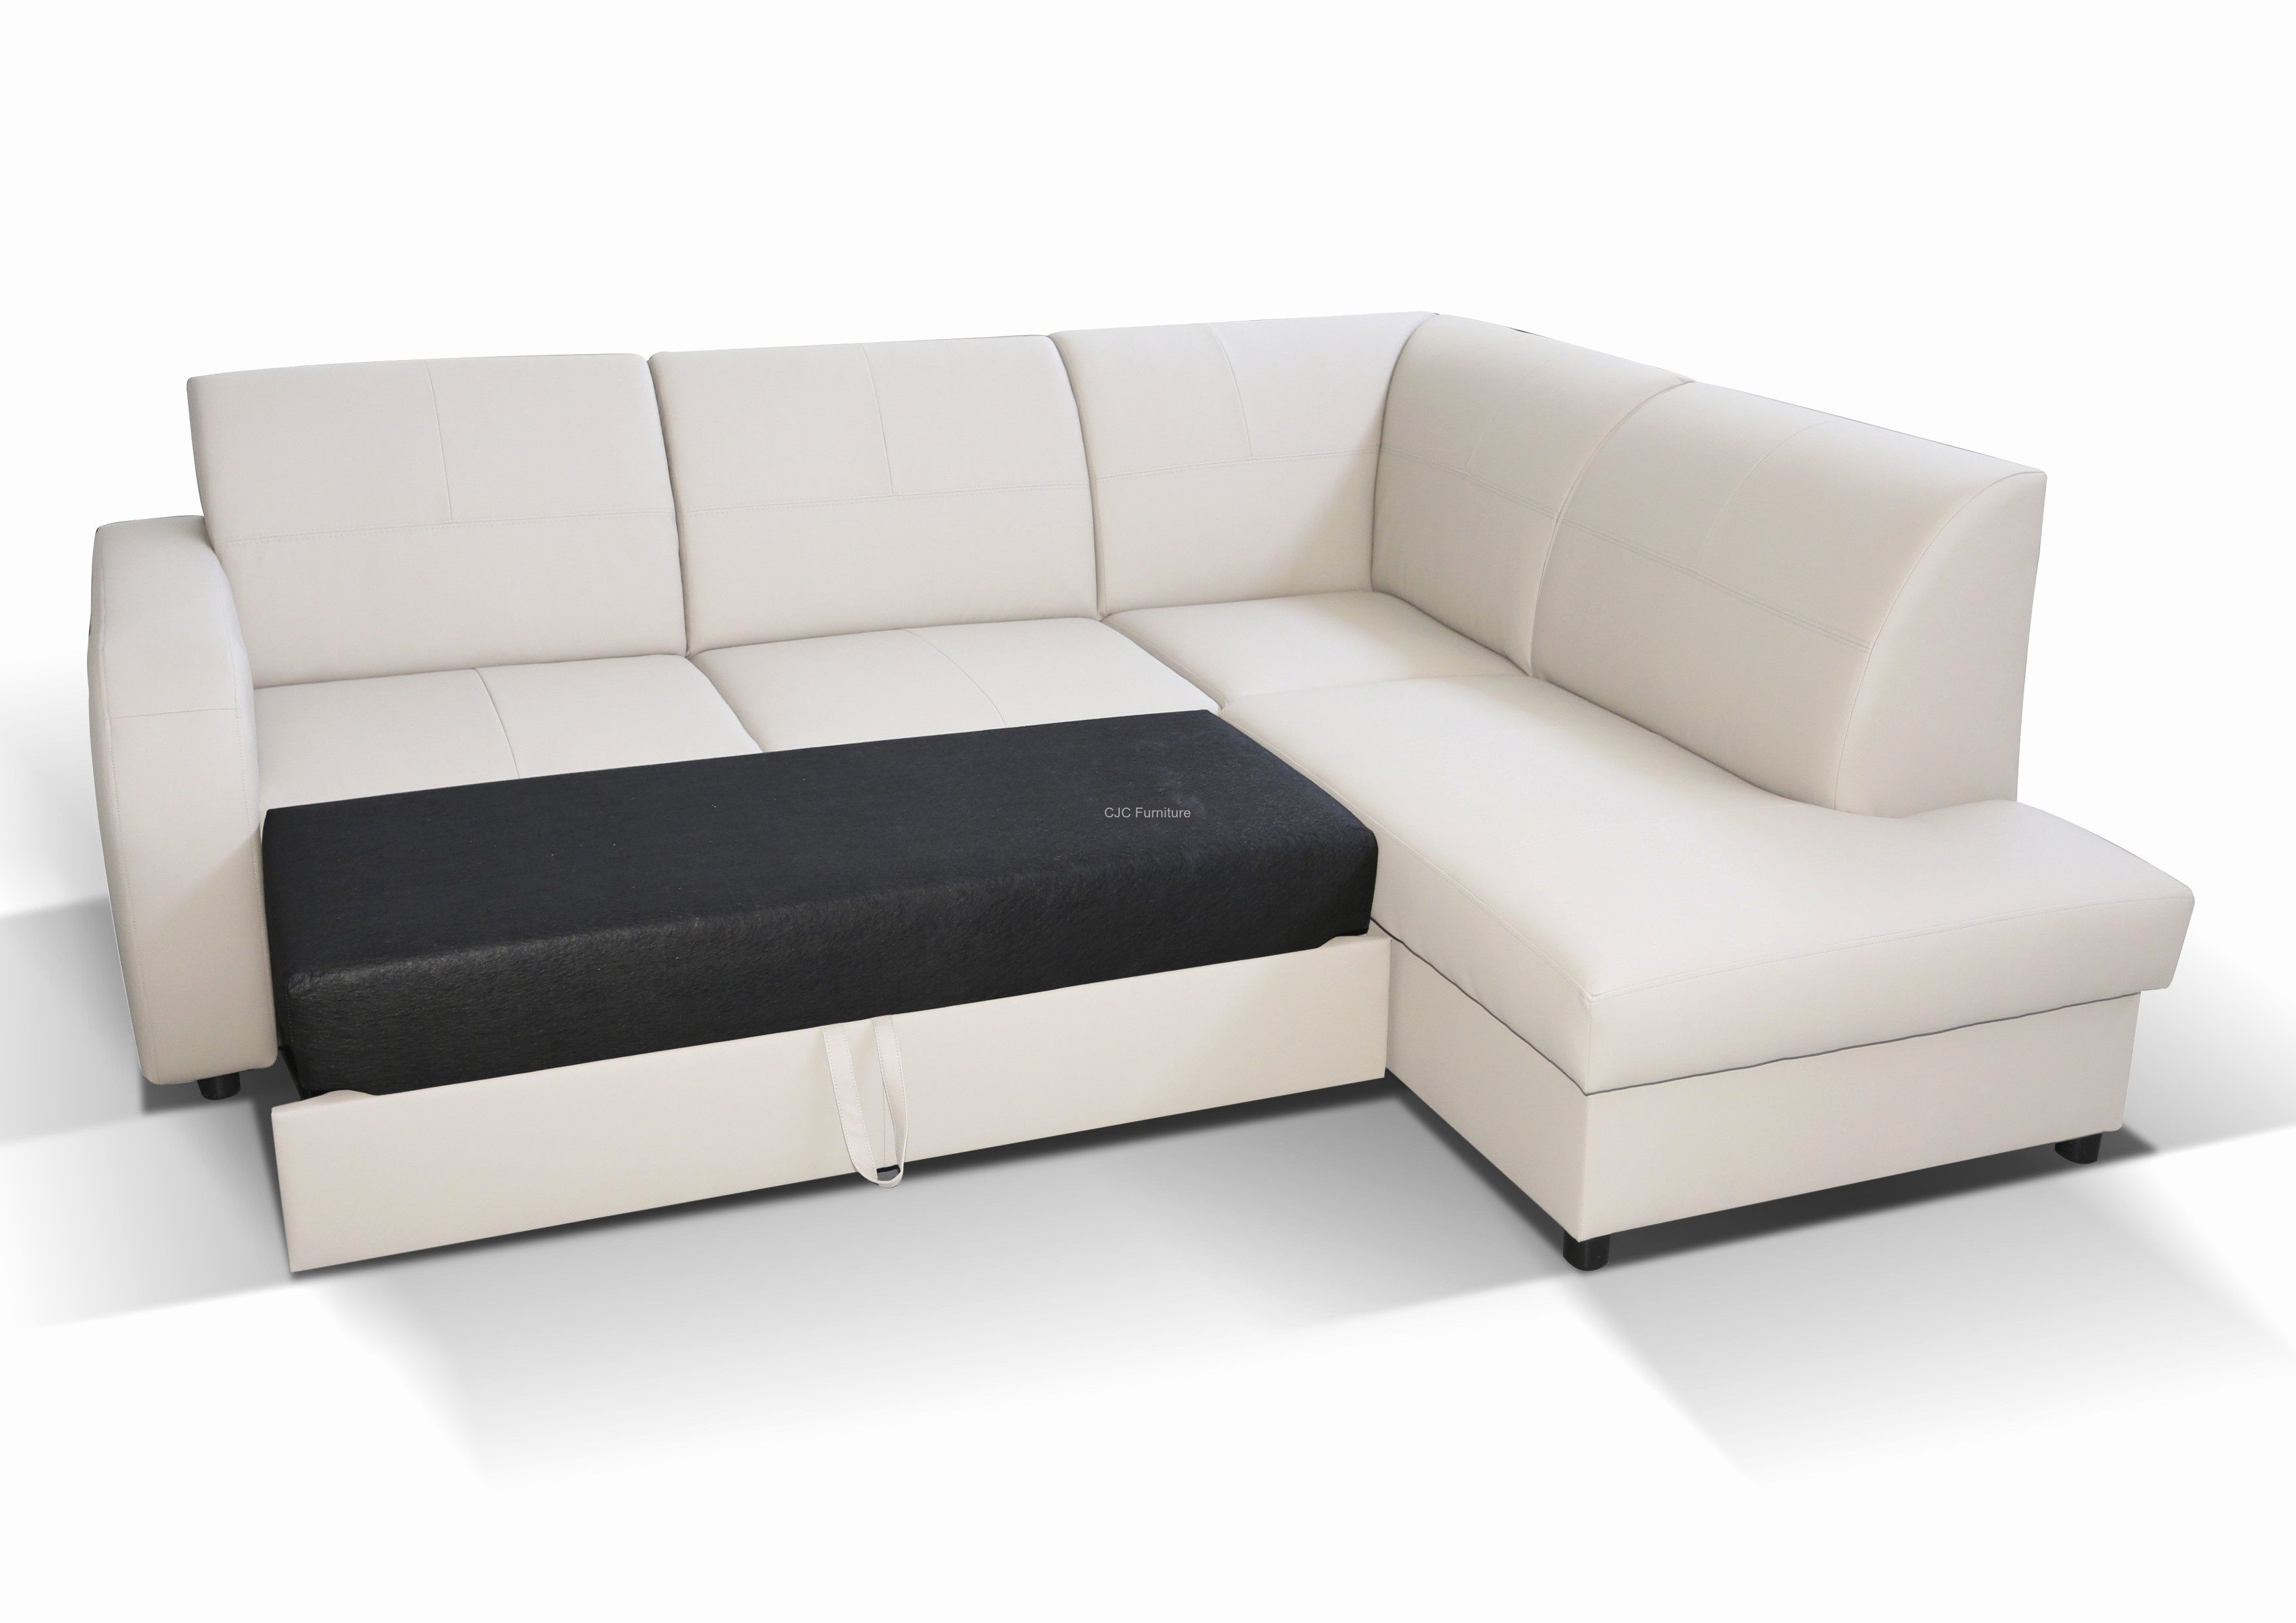 Best Cheap Sofas Uk Plush Sectional Sofa With Chaise Pin By Great On Corner Bed Amazing Photograpy Birmingham Savae Check More At Http